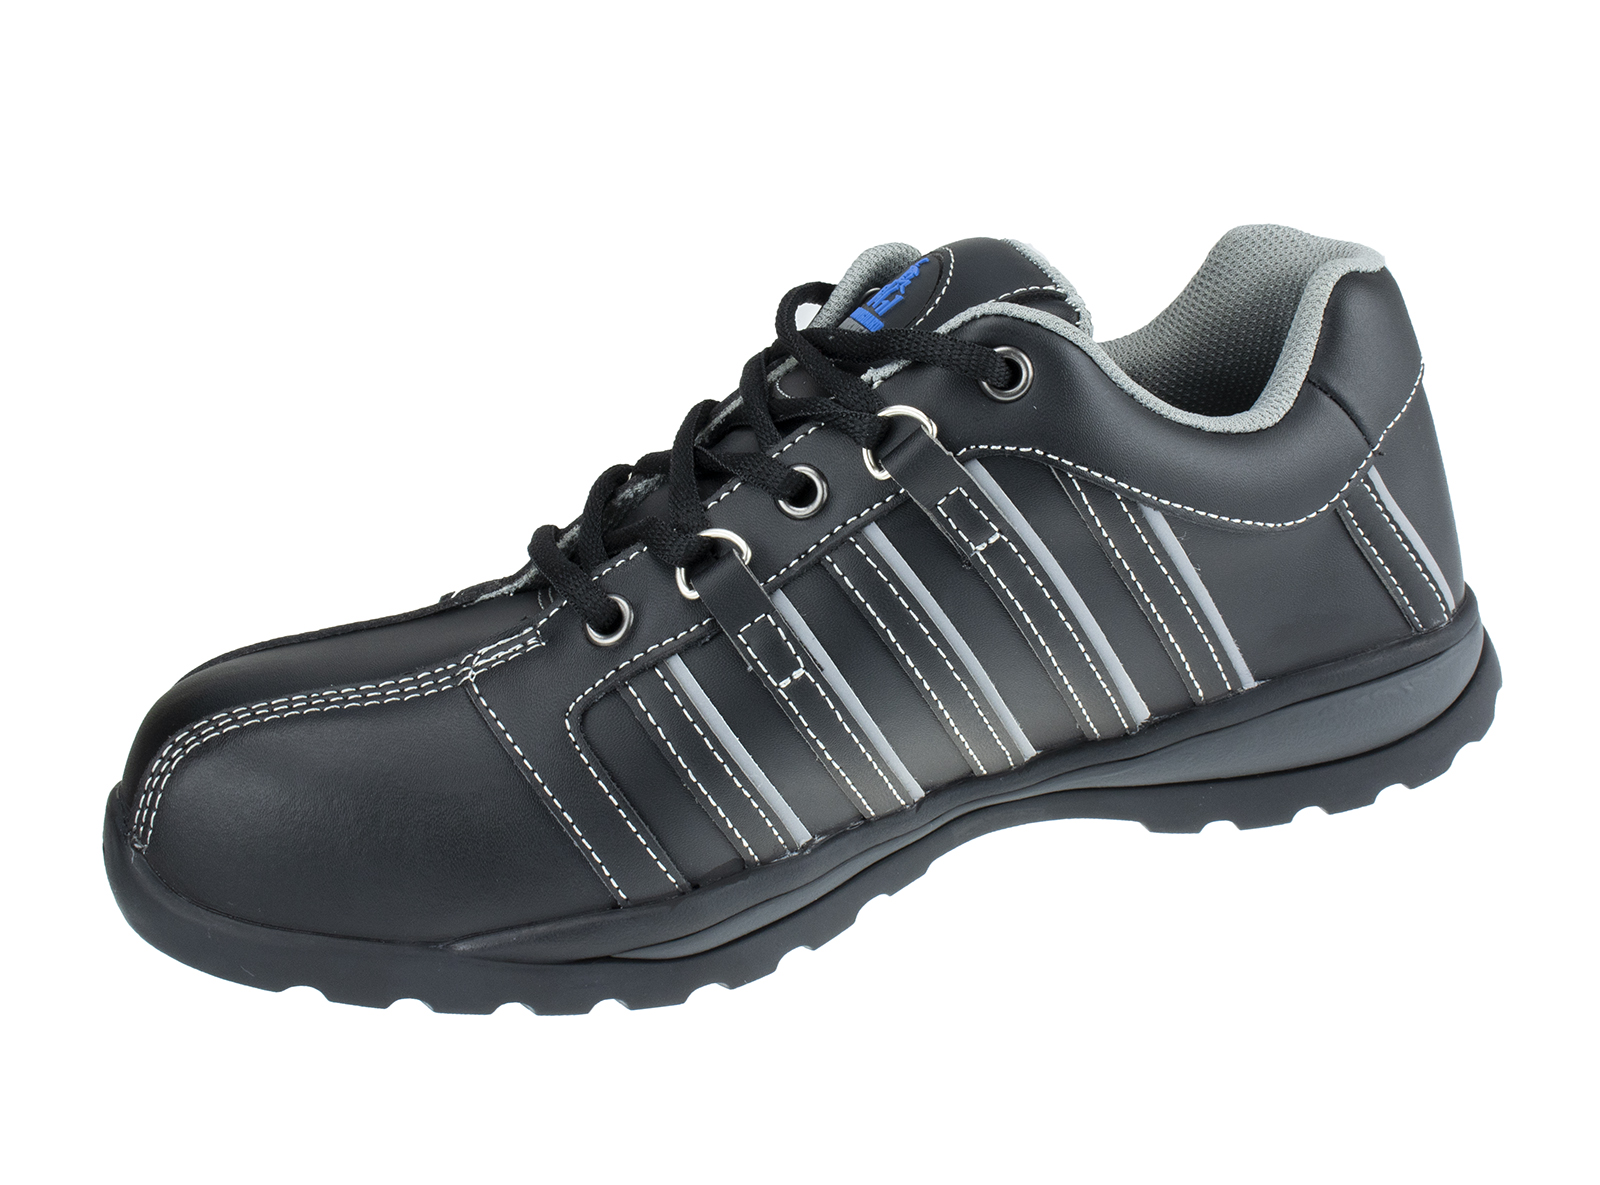 Speedster Leather Safety Trainer w/Toe Protection & Heel energy absorption - side